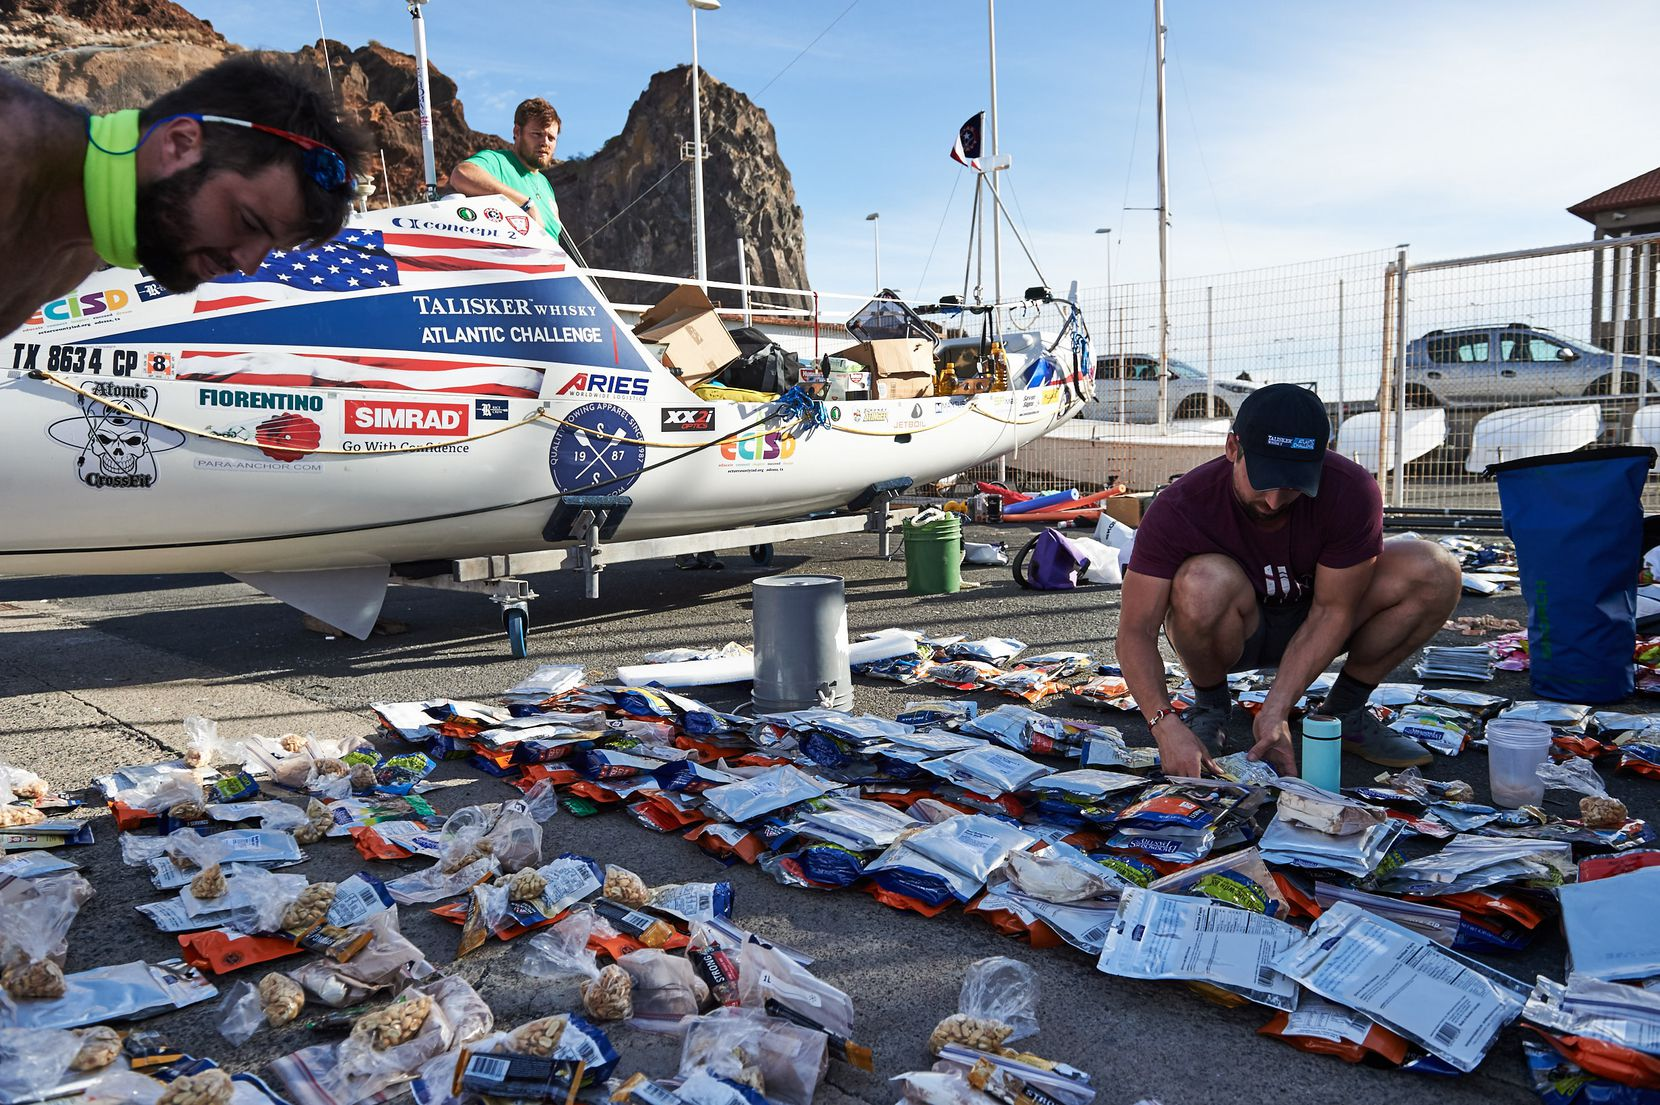 The American Oarsmen prepare their stock of meal rations before the start of the trip. From left are Krauskopf (top left corner), Matson (on the boat) and Alviar.